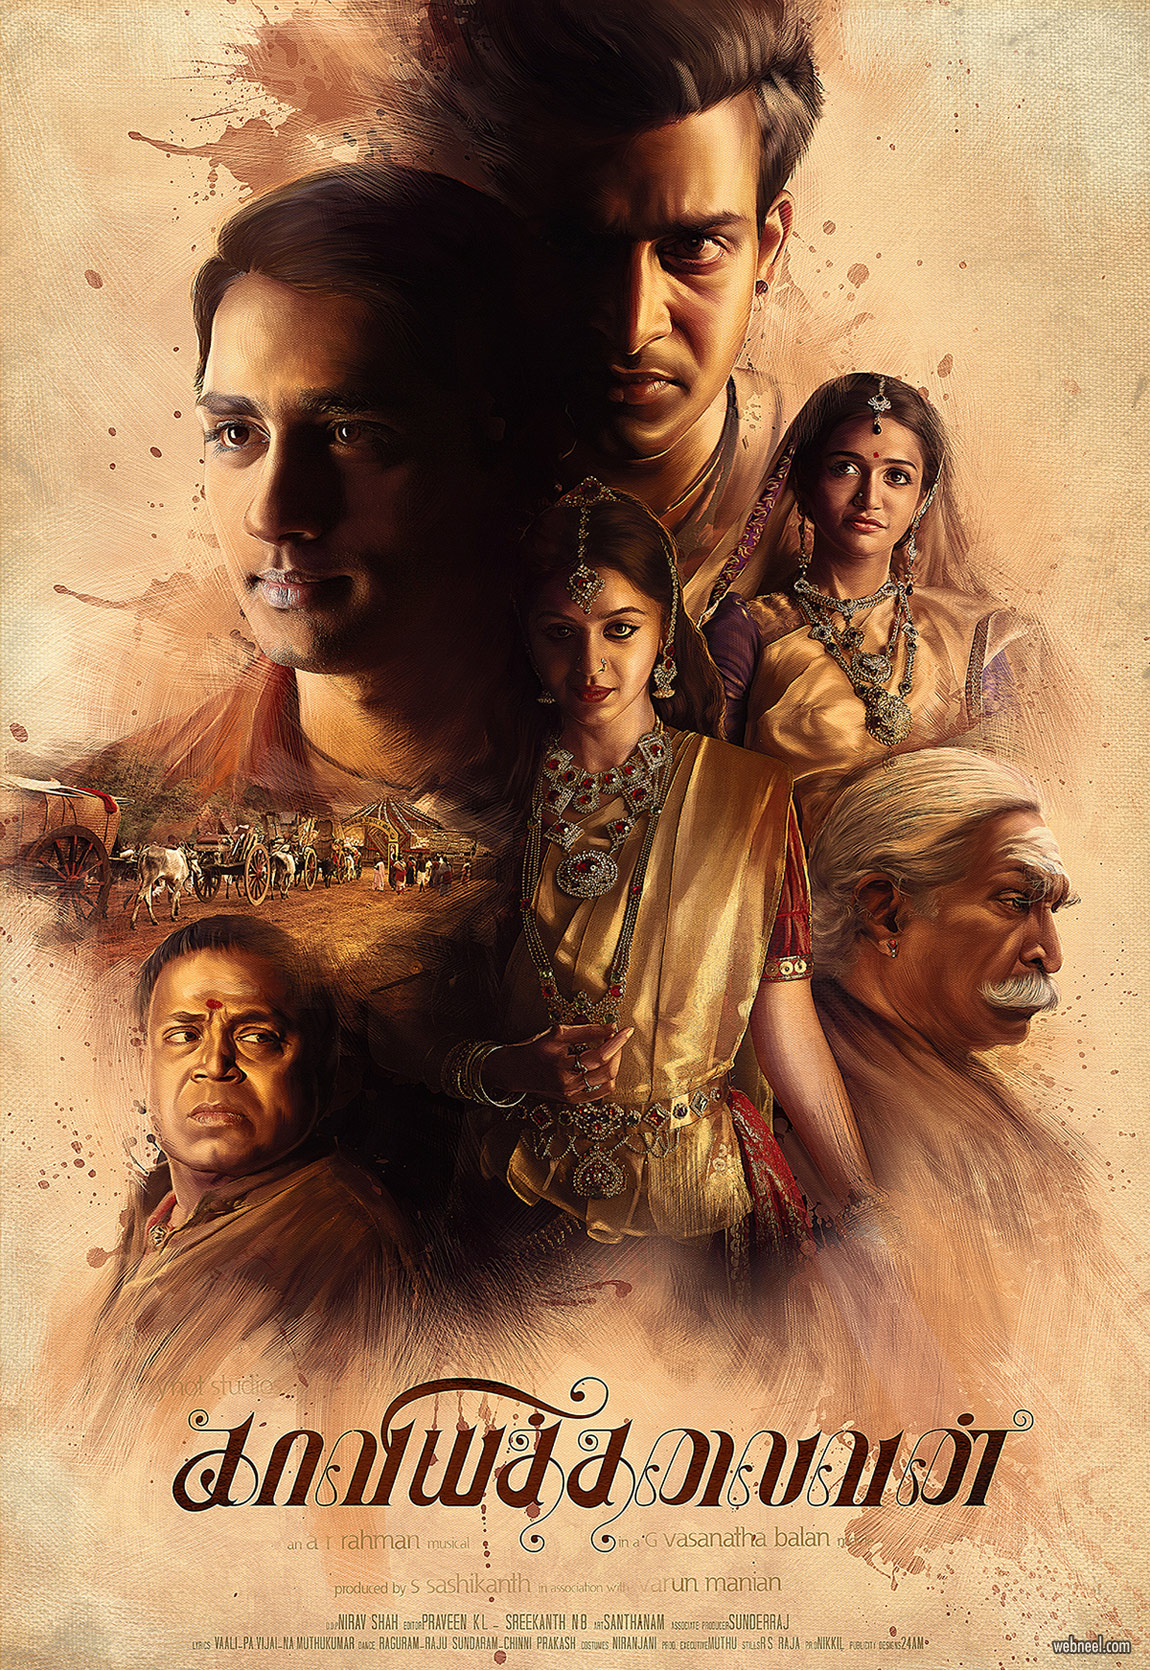 movie poster design india tamil kaviyathalaivan by prathoolnt